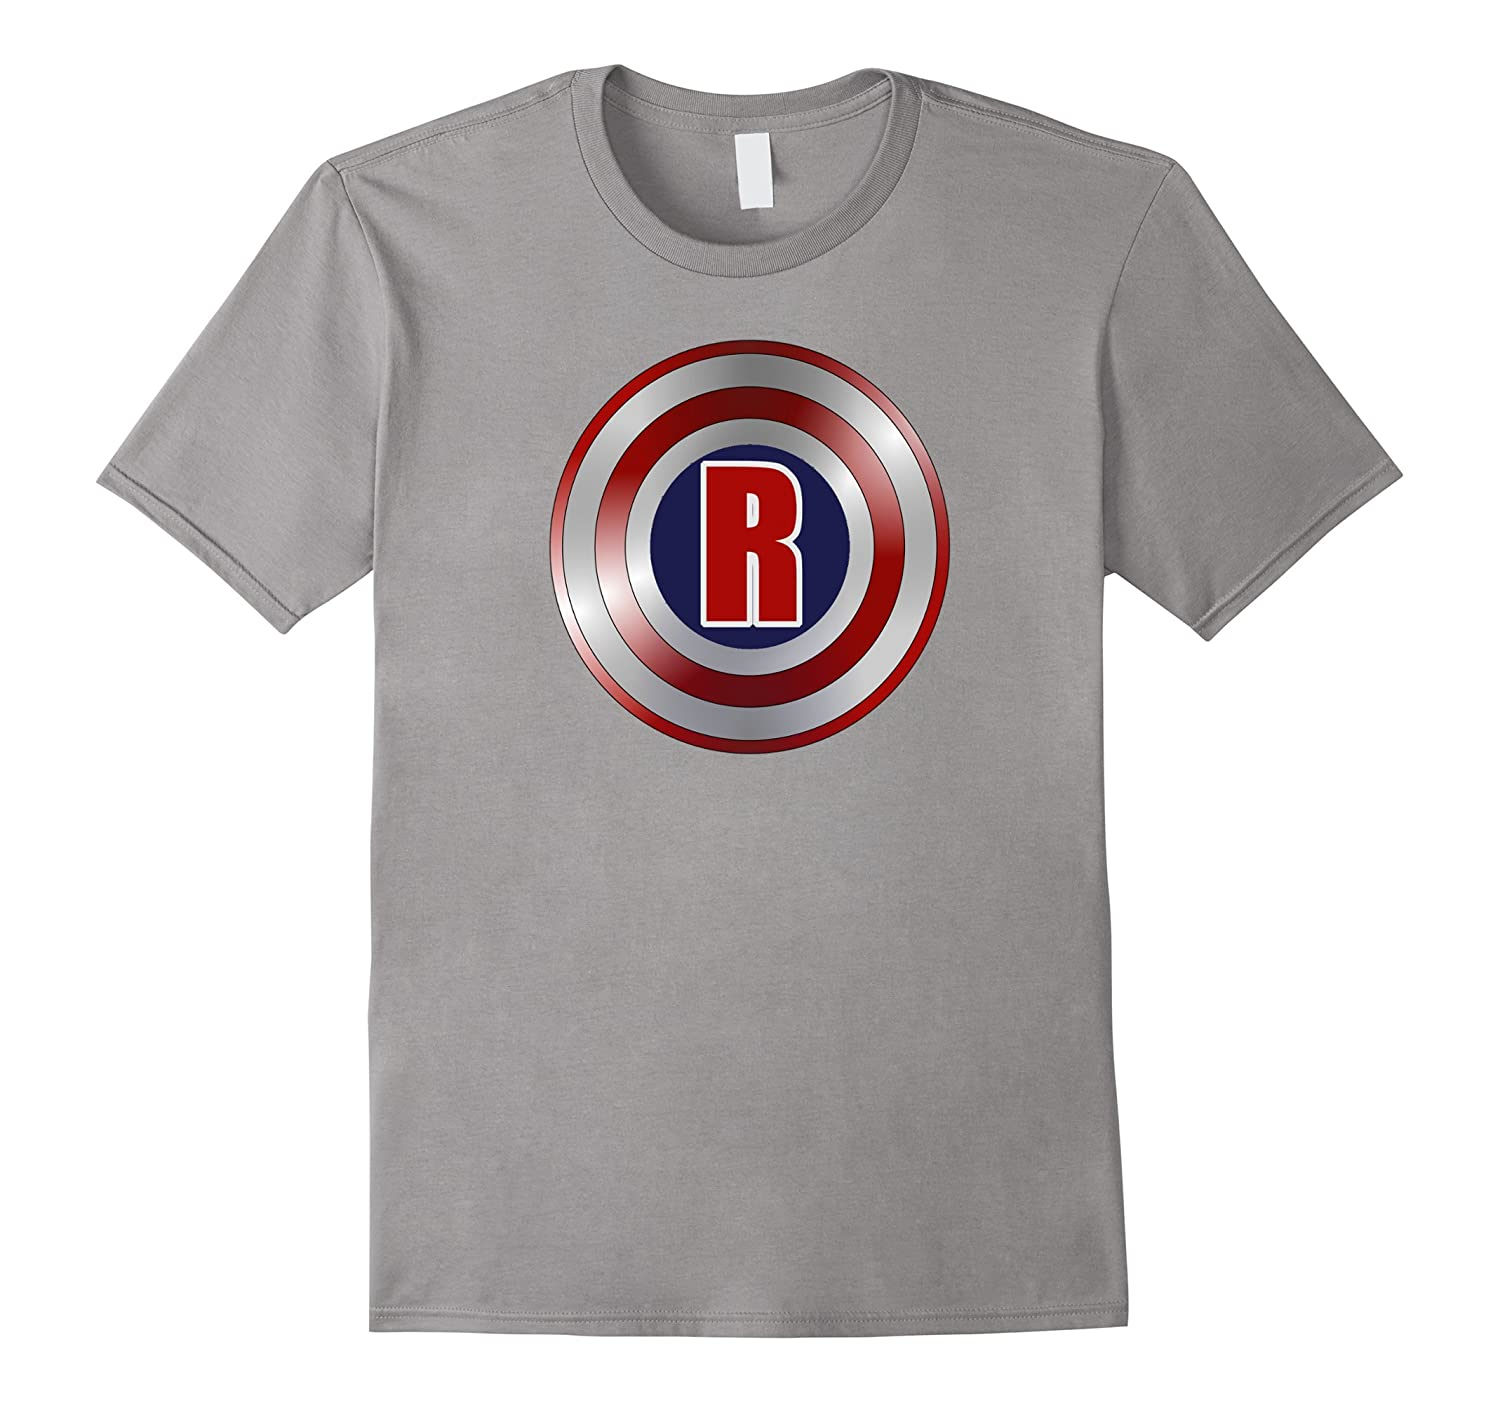 R Names For Girls & Boys Shirt Baby Names Starting with R